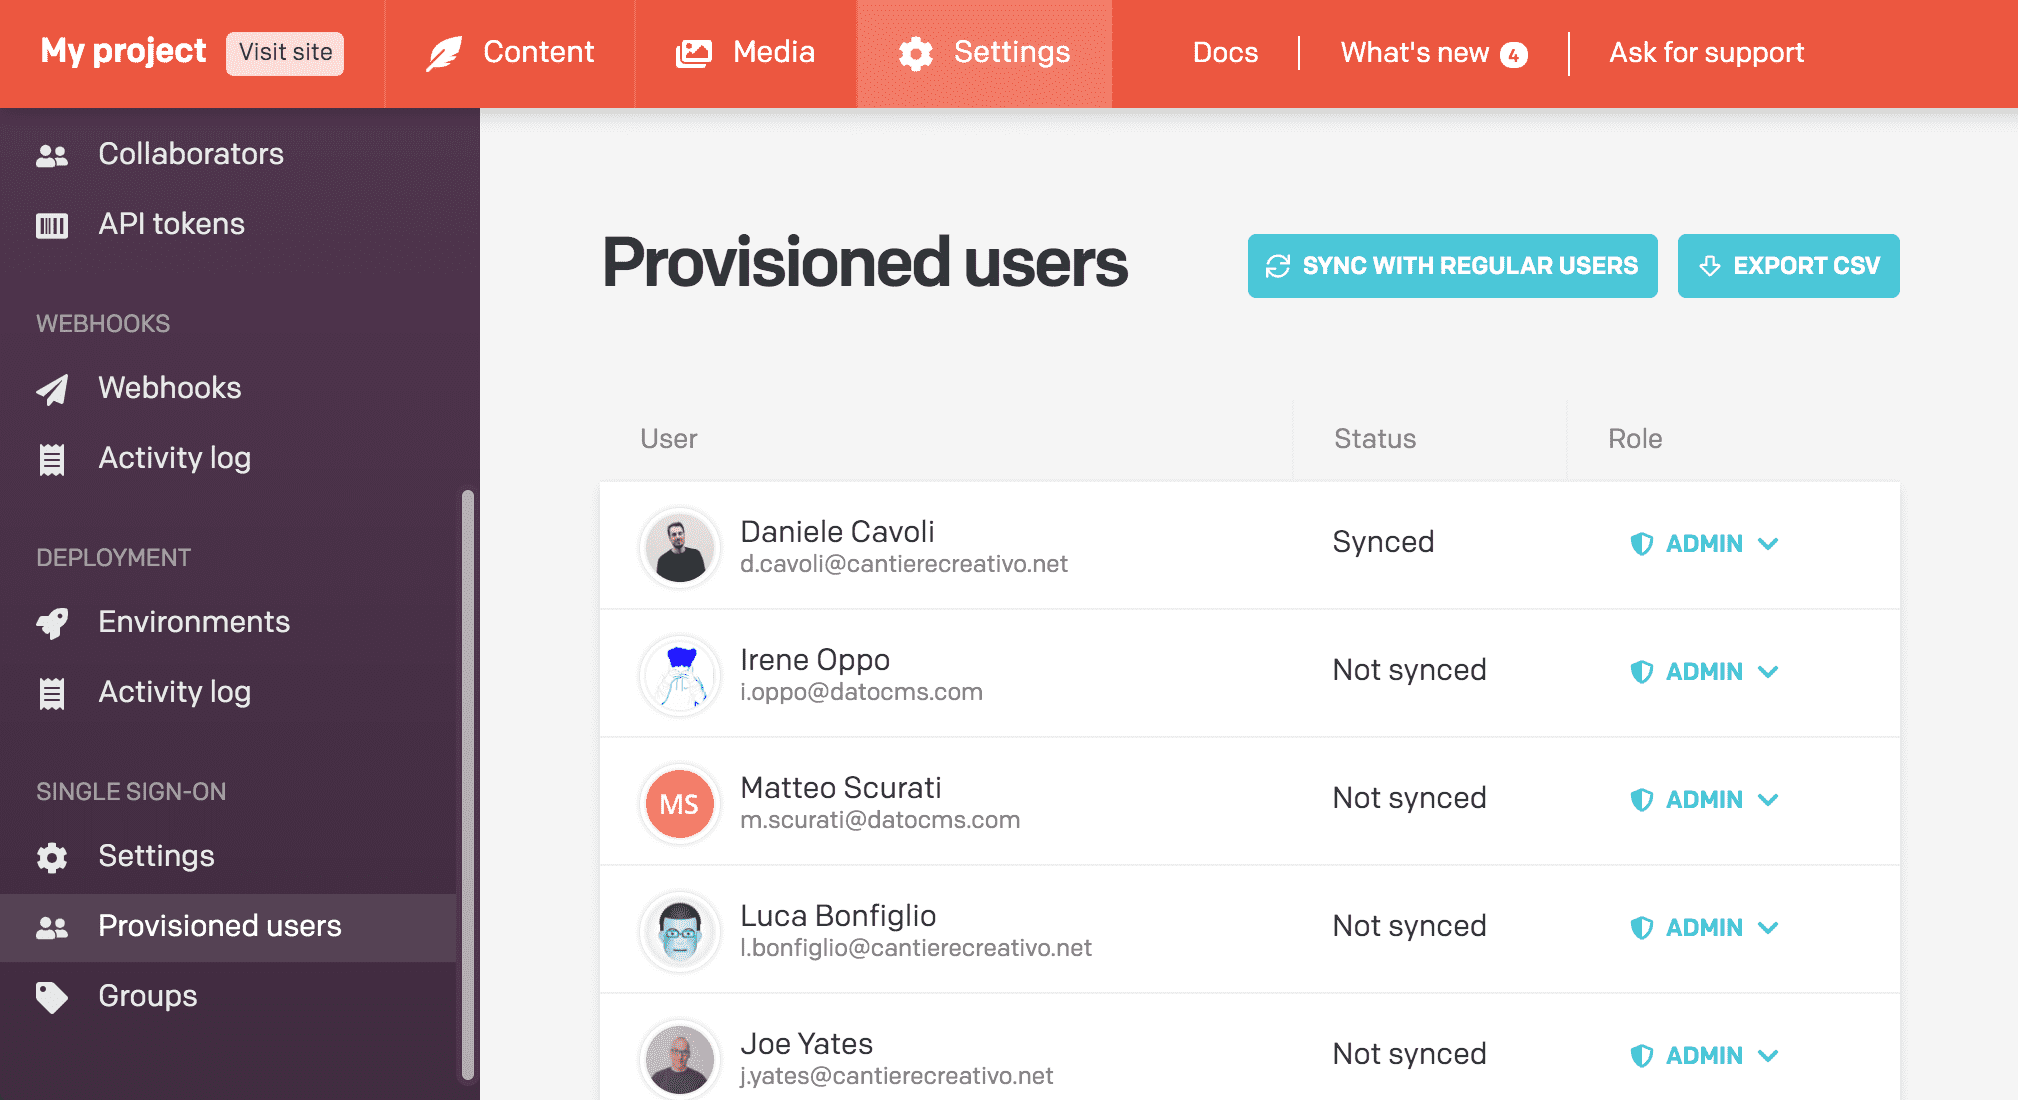 This is the list of the previsioned users